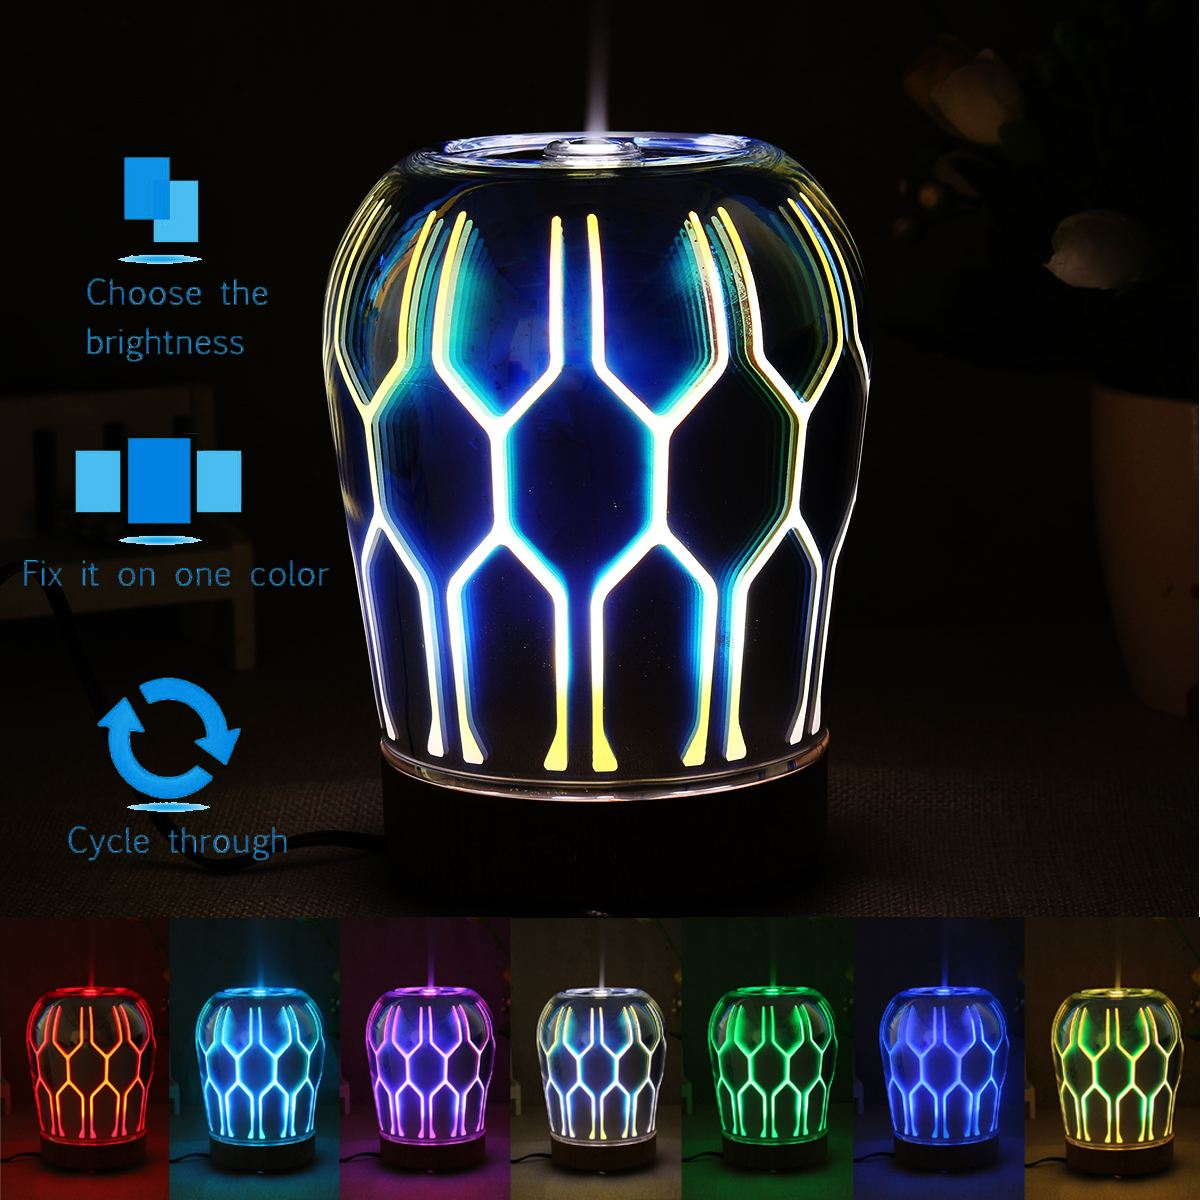 90-100 ml LED Color Changing Night Light 3D Oil Aroma Diffuser Portable Humidifier Bedside Desk Table Lamp Home Decor home decor cartoon sheep bedside desk led night light